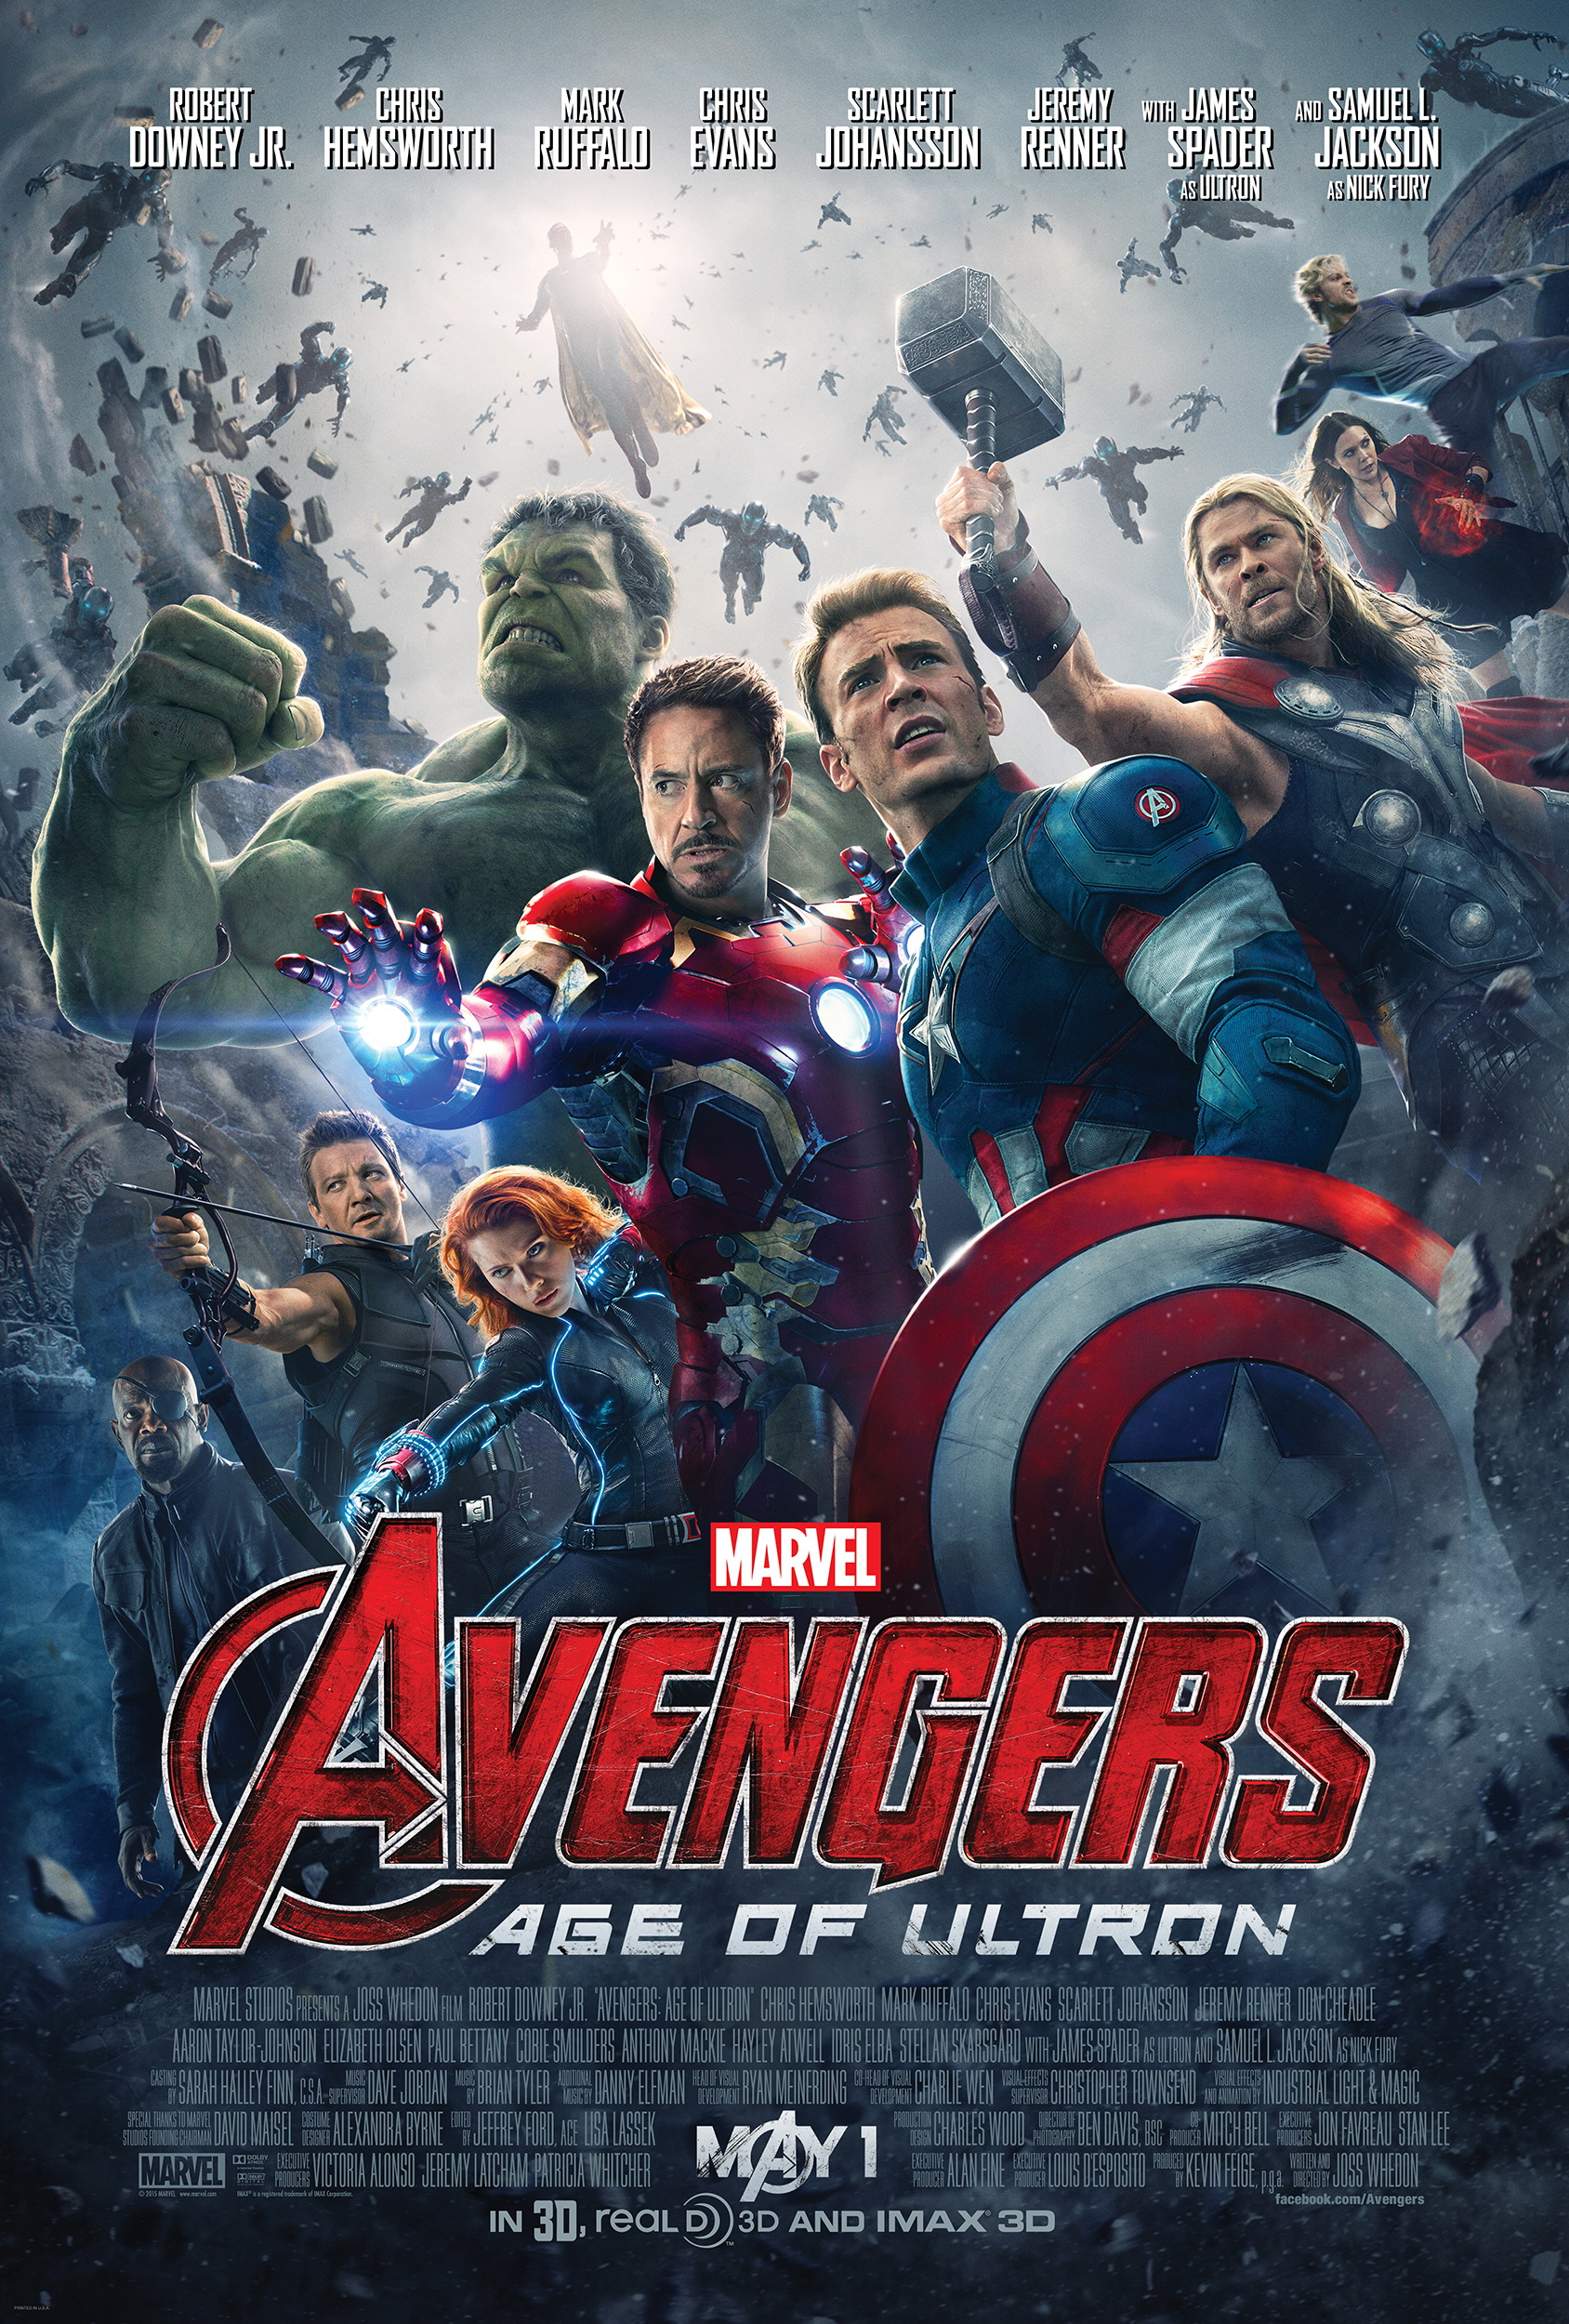 """Avengers - Age of Ultron"" theatrical teaser poster."